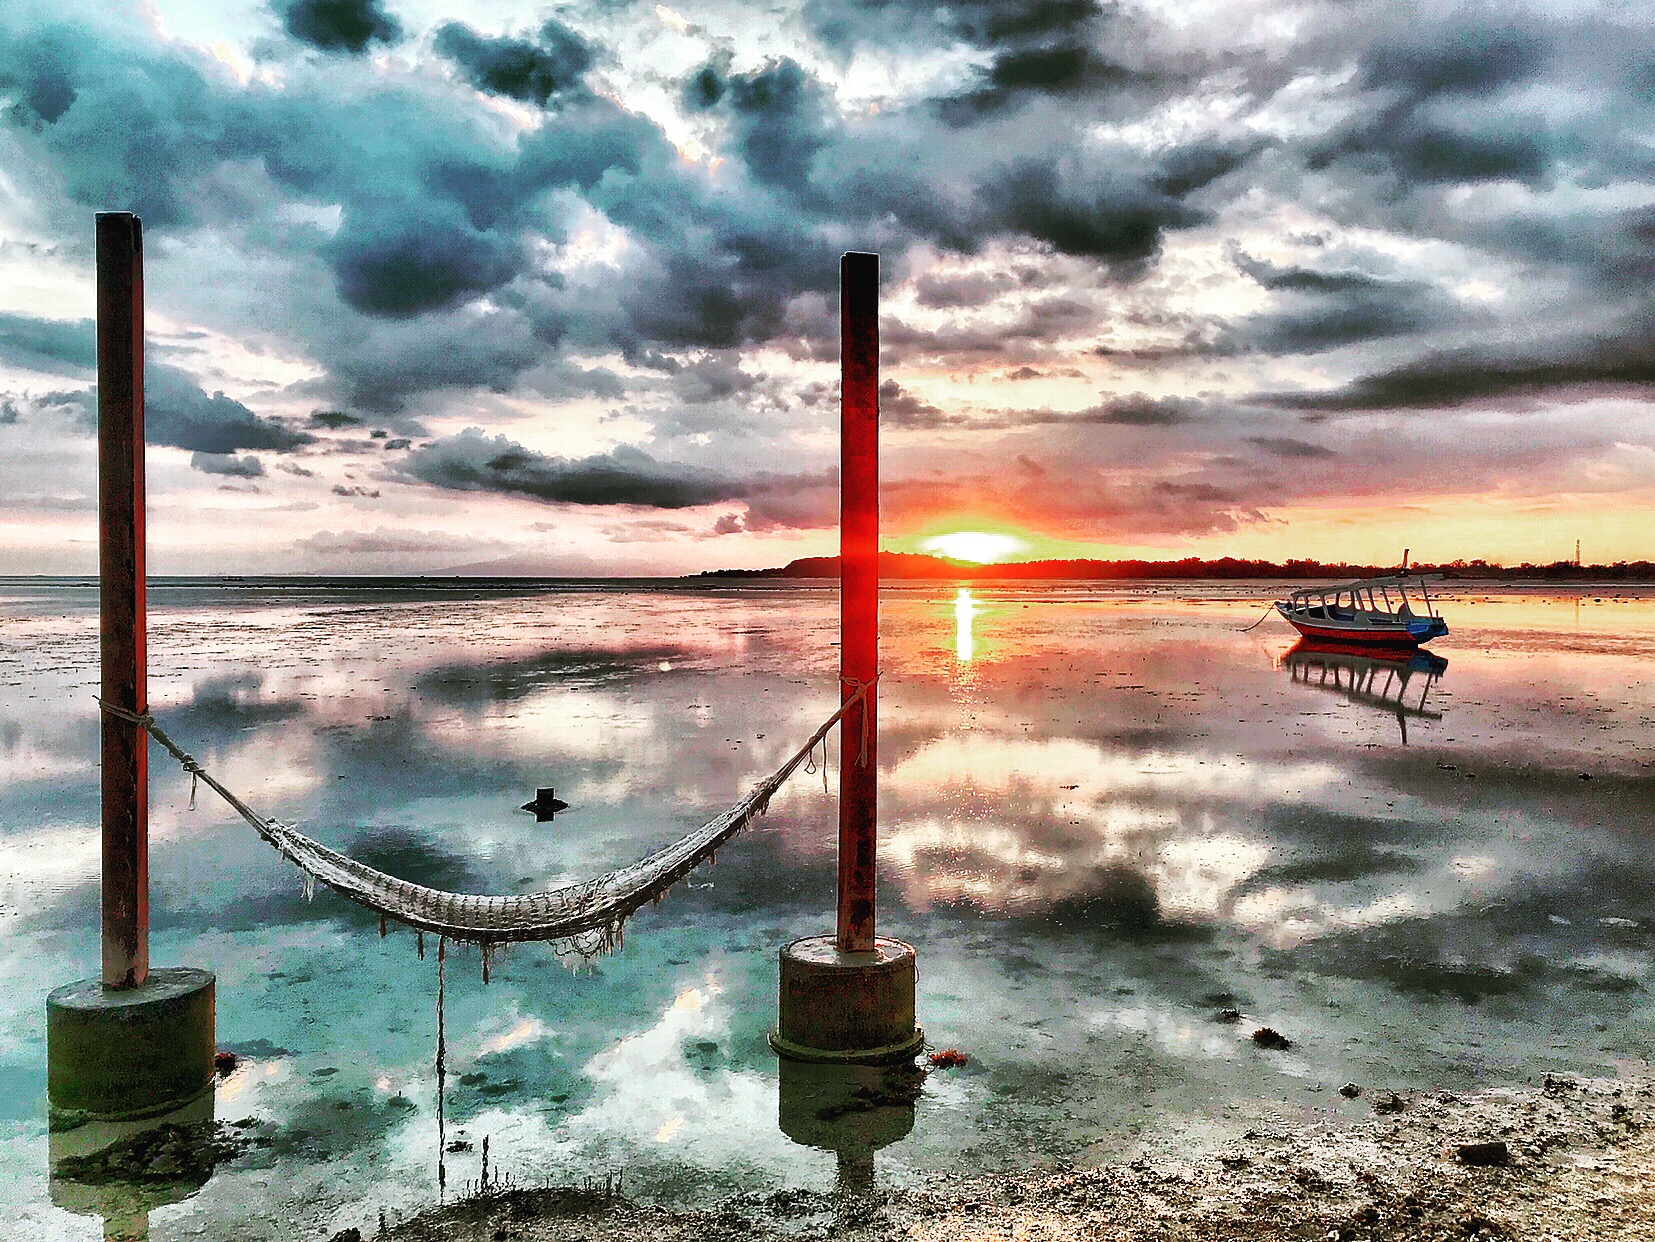 The Best Gili Air Restaurants, Cafes, And Happy Hours